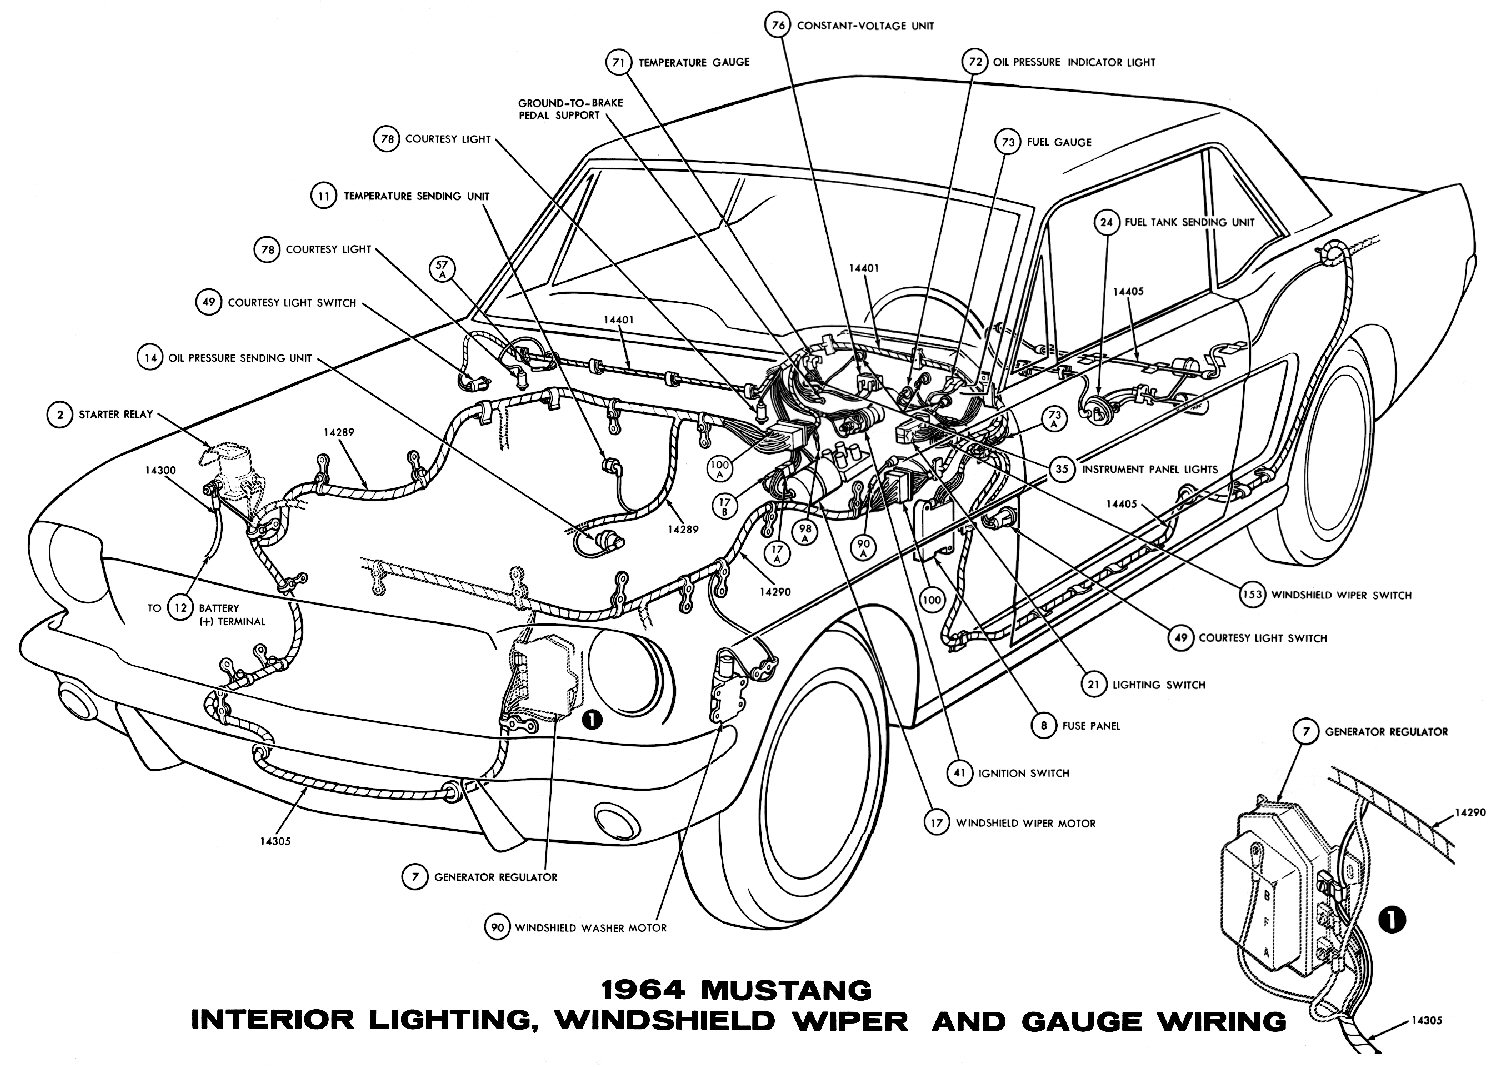 1964 Mustang Wiring Diagrams on jeep heater wiring harness